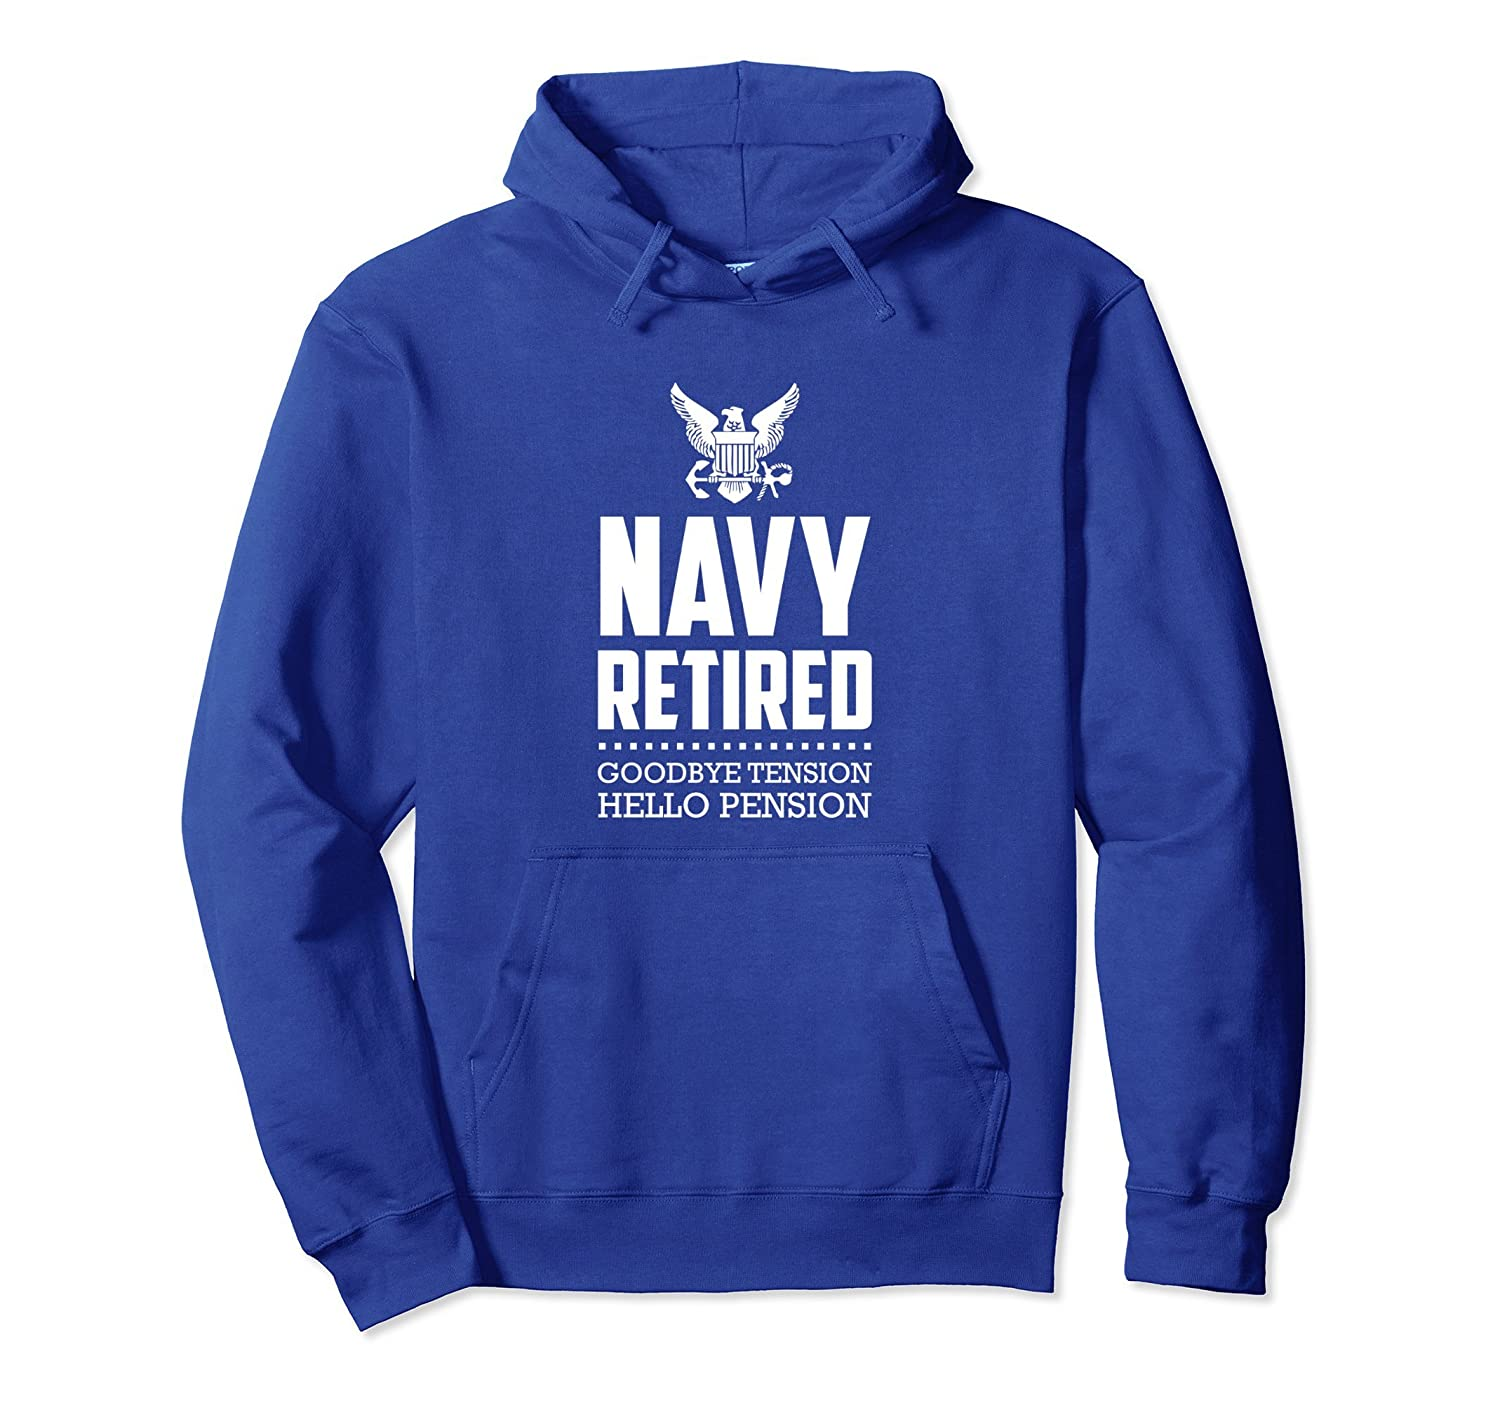 US Navy Retired Shirts – Goodbye Tension Hello Pension 10489-4LVS